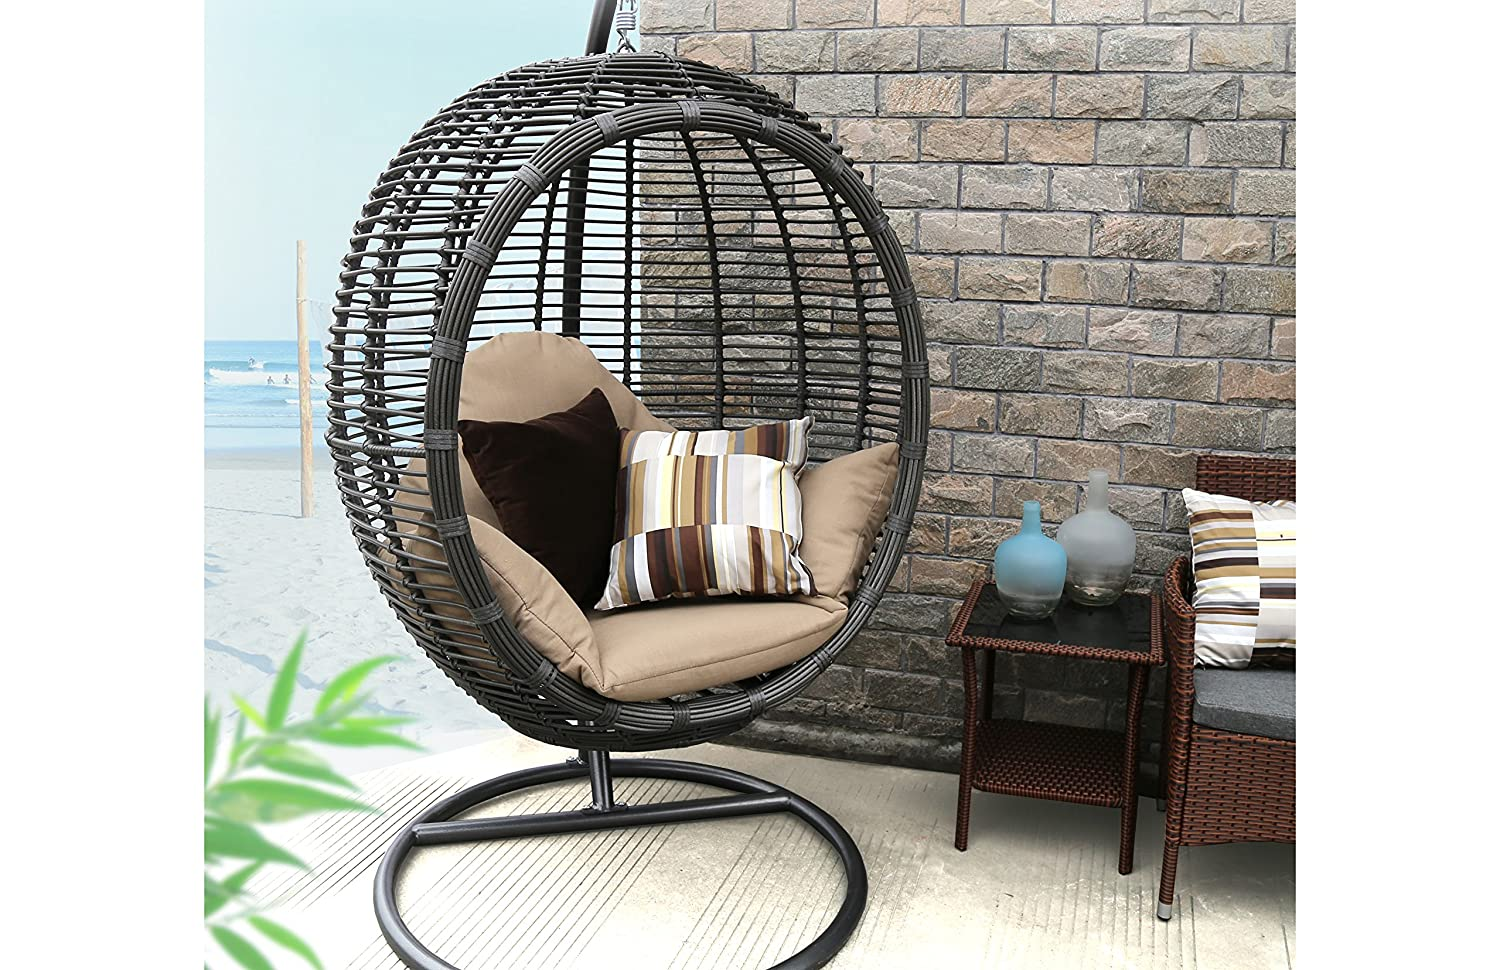 Amazon.com: Baner Garden X19 Oval Egg Hanging Patio Lounge Chair Chaise  Porch Swing Hammock Single Seat Stand Wicker With Cushion, Full, Black:  Kitchen U0026 ...